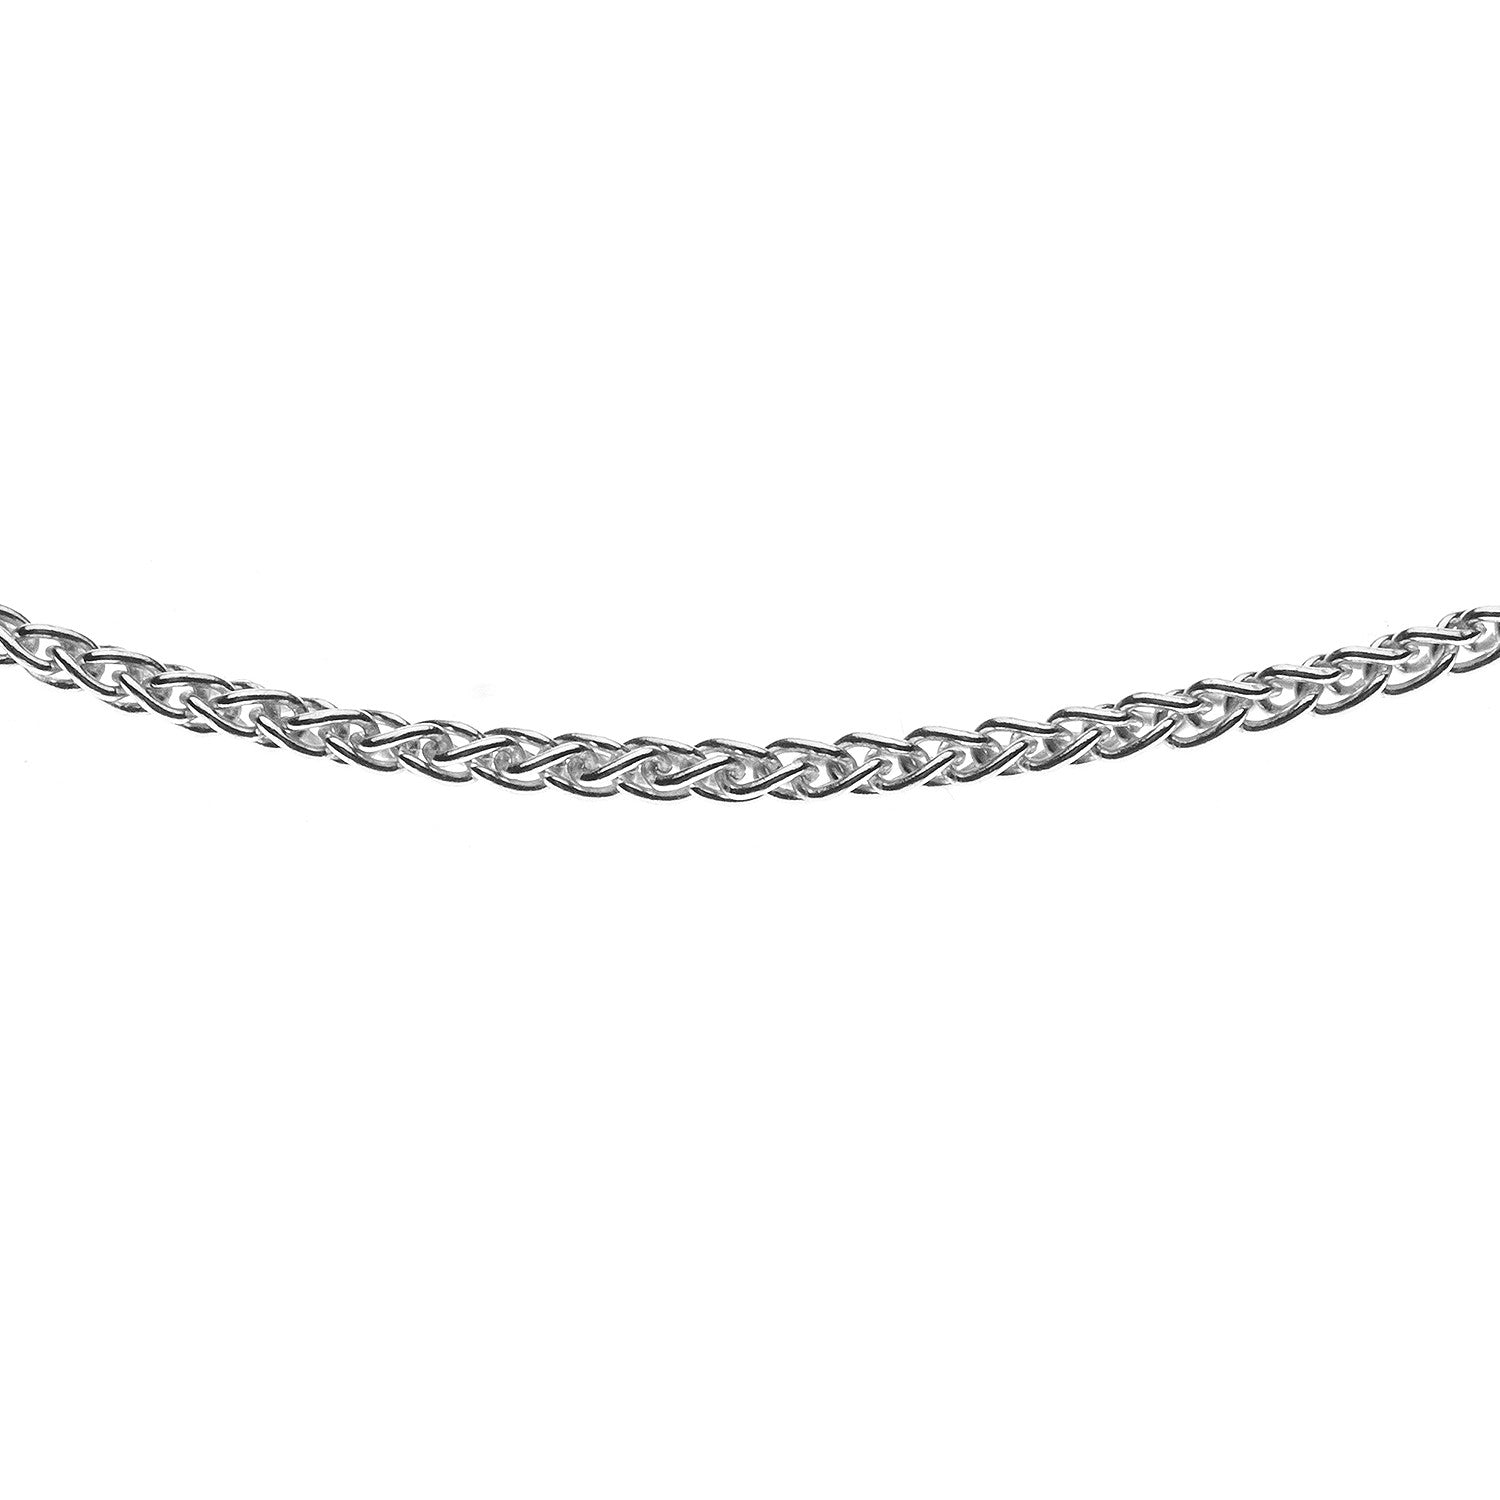 station bracelet c girls sterling cable anklets italy free chain fine jewelry bead nickel anklet silver